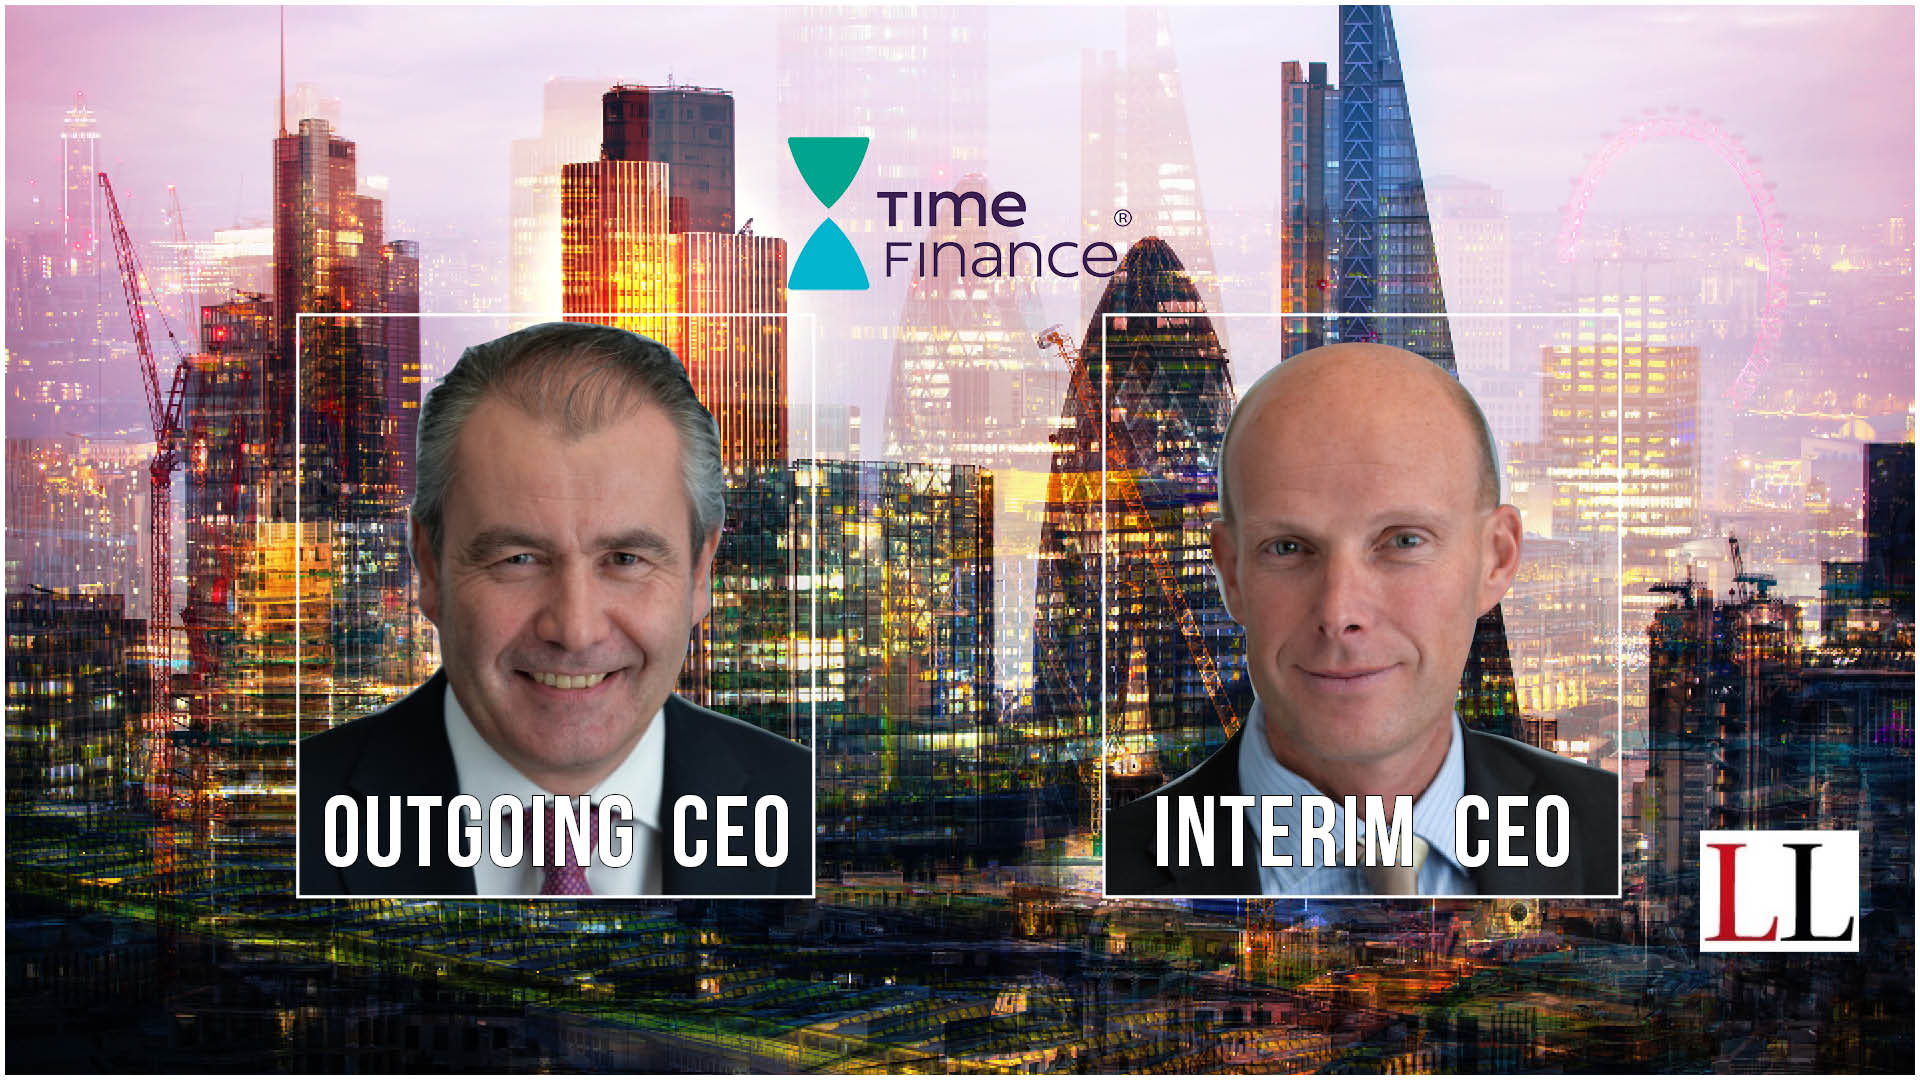 Ian Smith steps down at Time Finance, interim CEO appointed